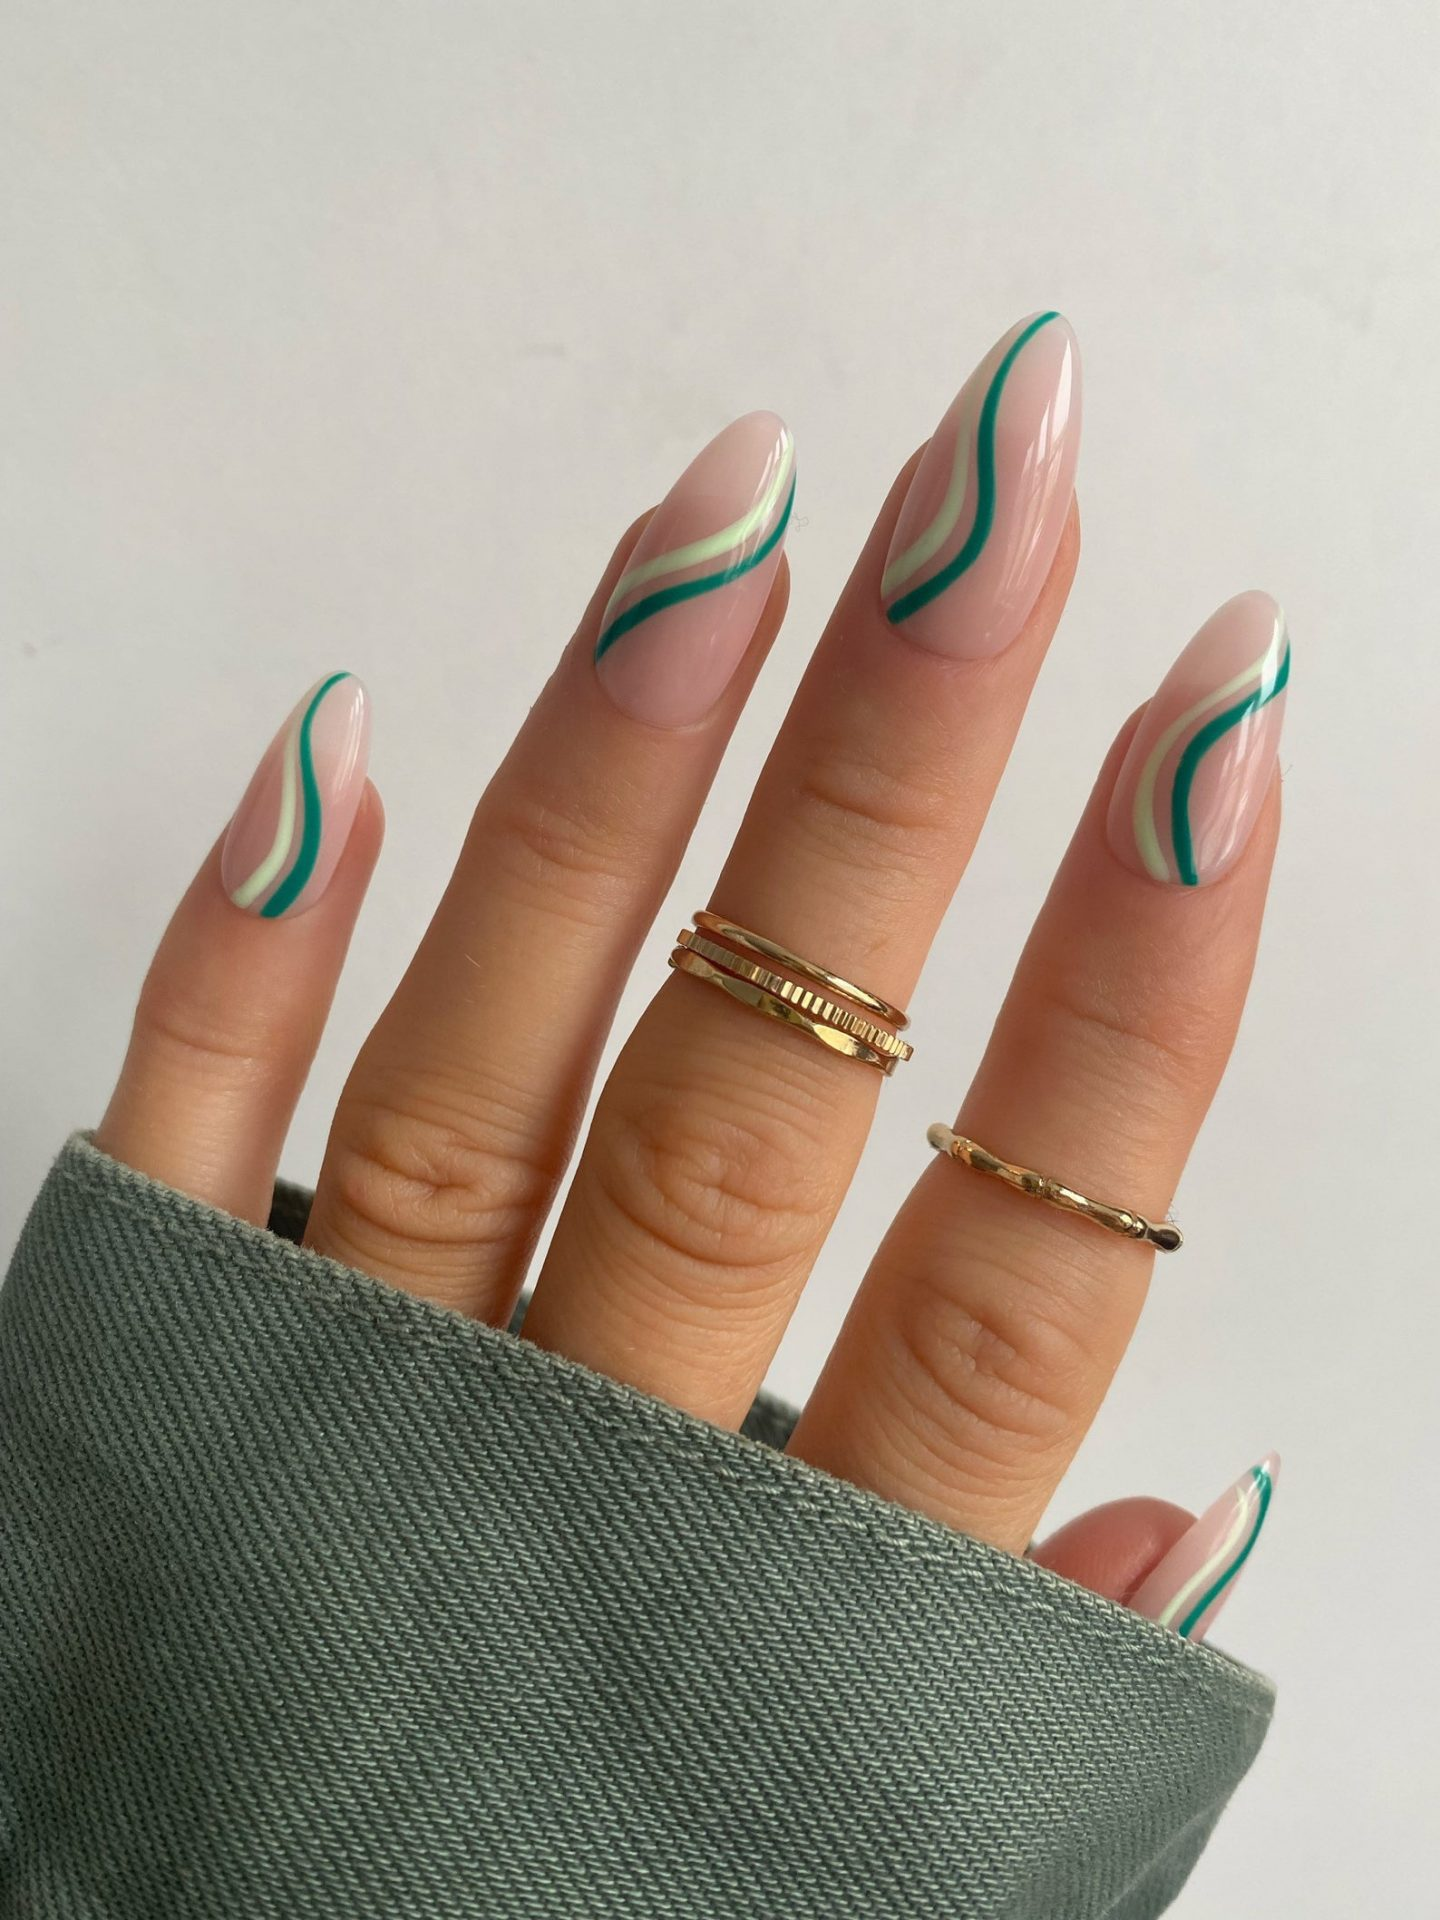 Green abstract swirl nails